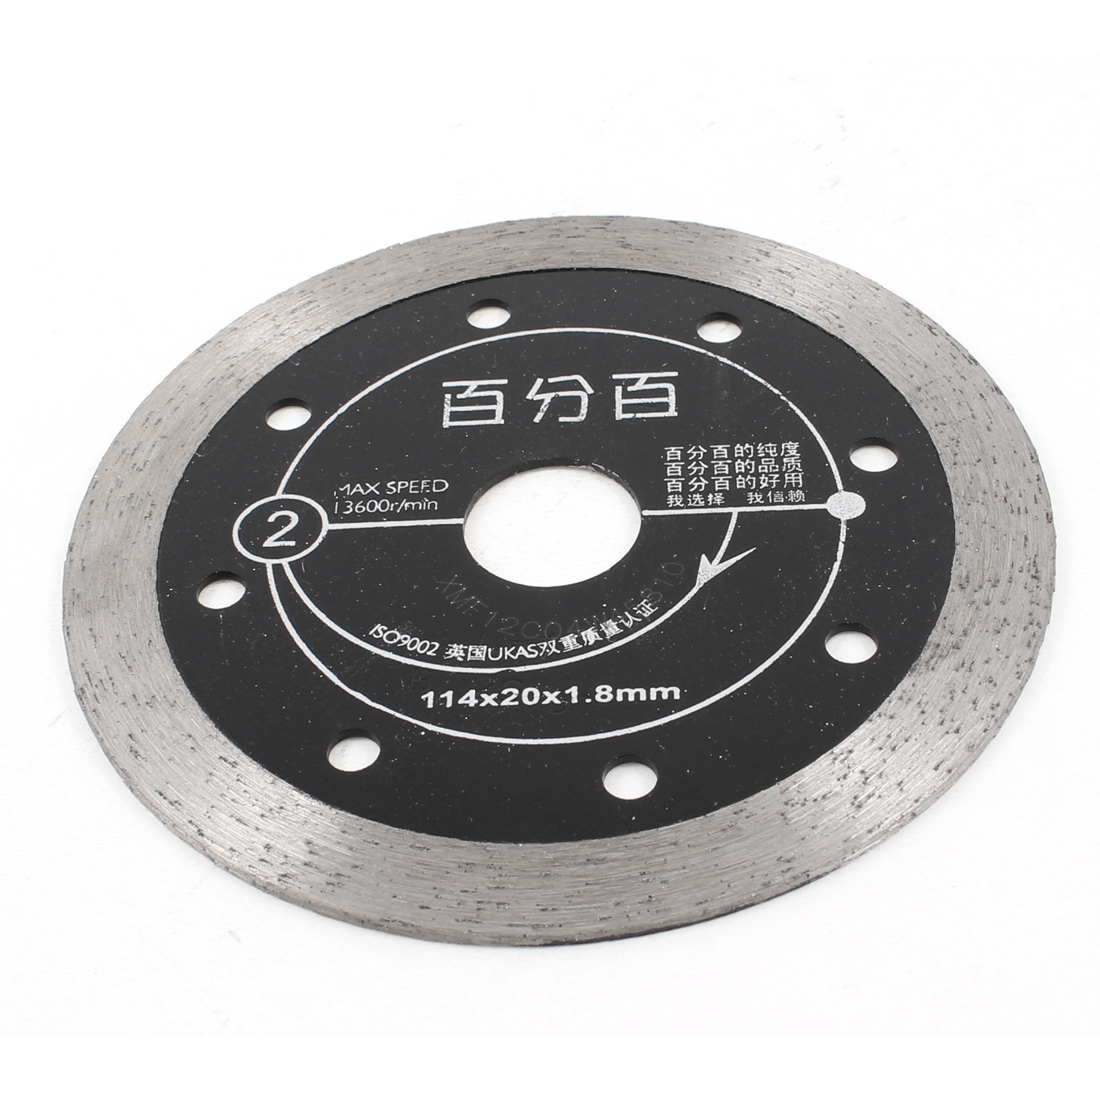 "4.4"" Outside Dia Double Side Stone Ceramic Cutting Diamond Saw Slice Disc"